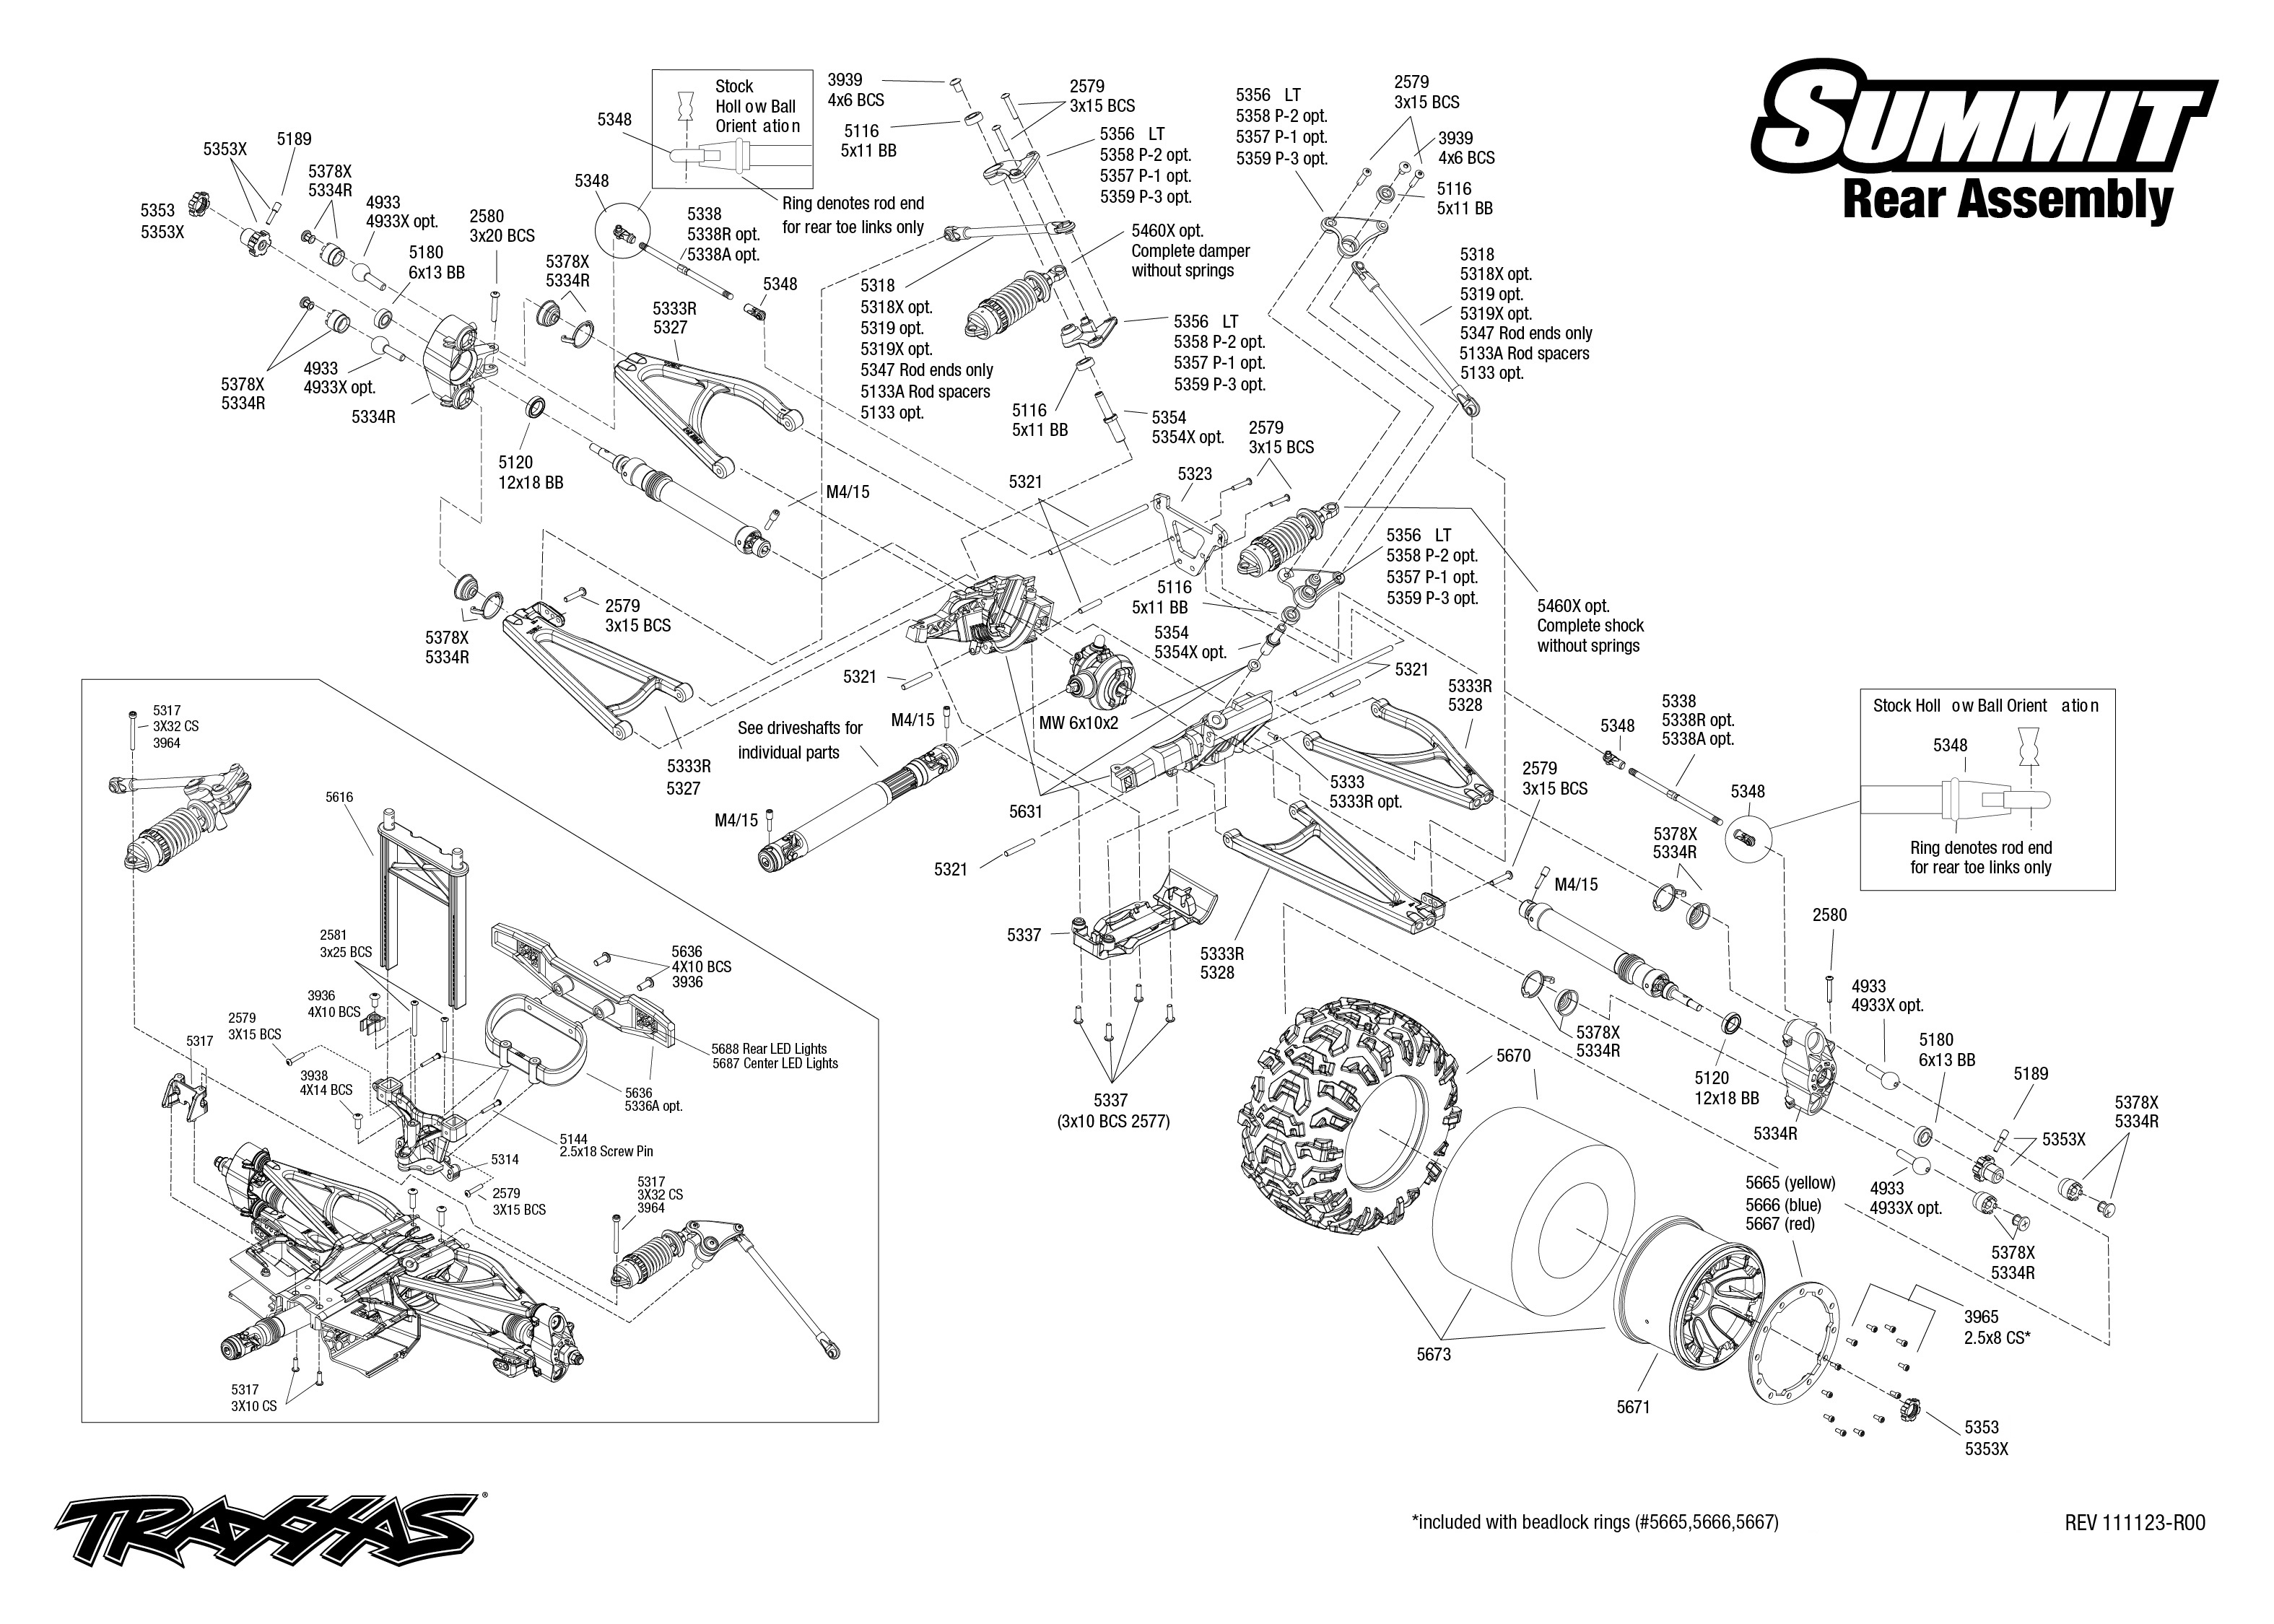 Traxxas Slash Parts Manual Nitro Rustler Diagram Exploded View Summit Rear Part Astra Astramodel